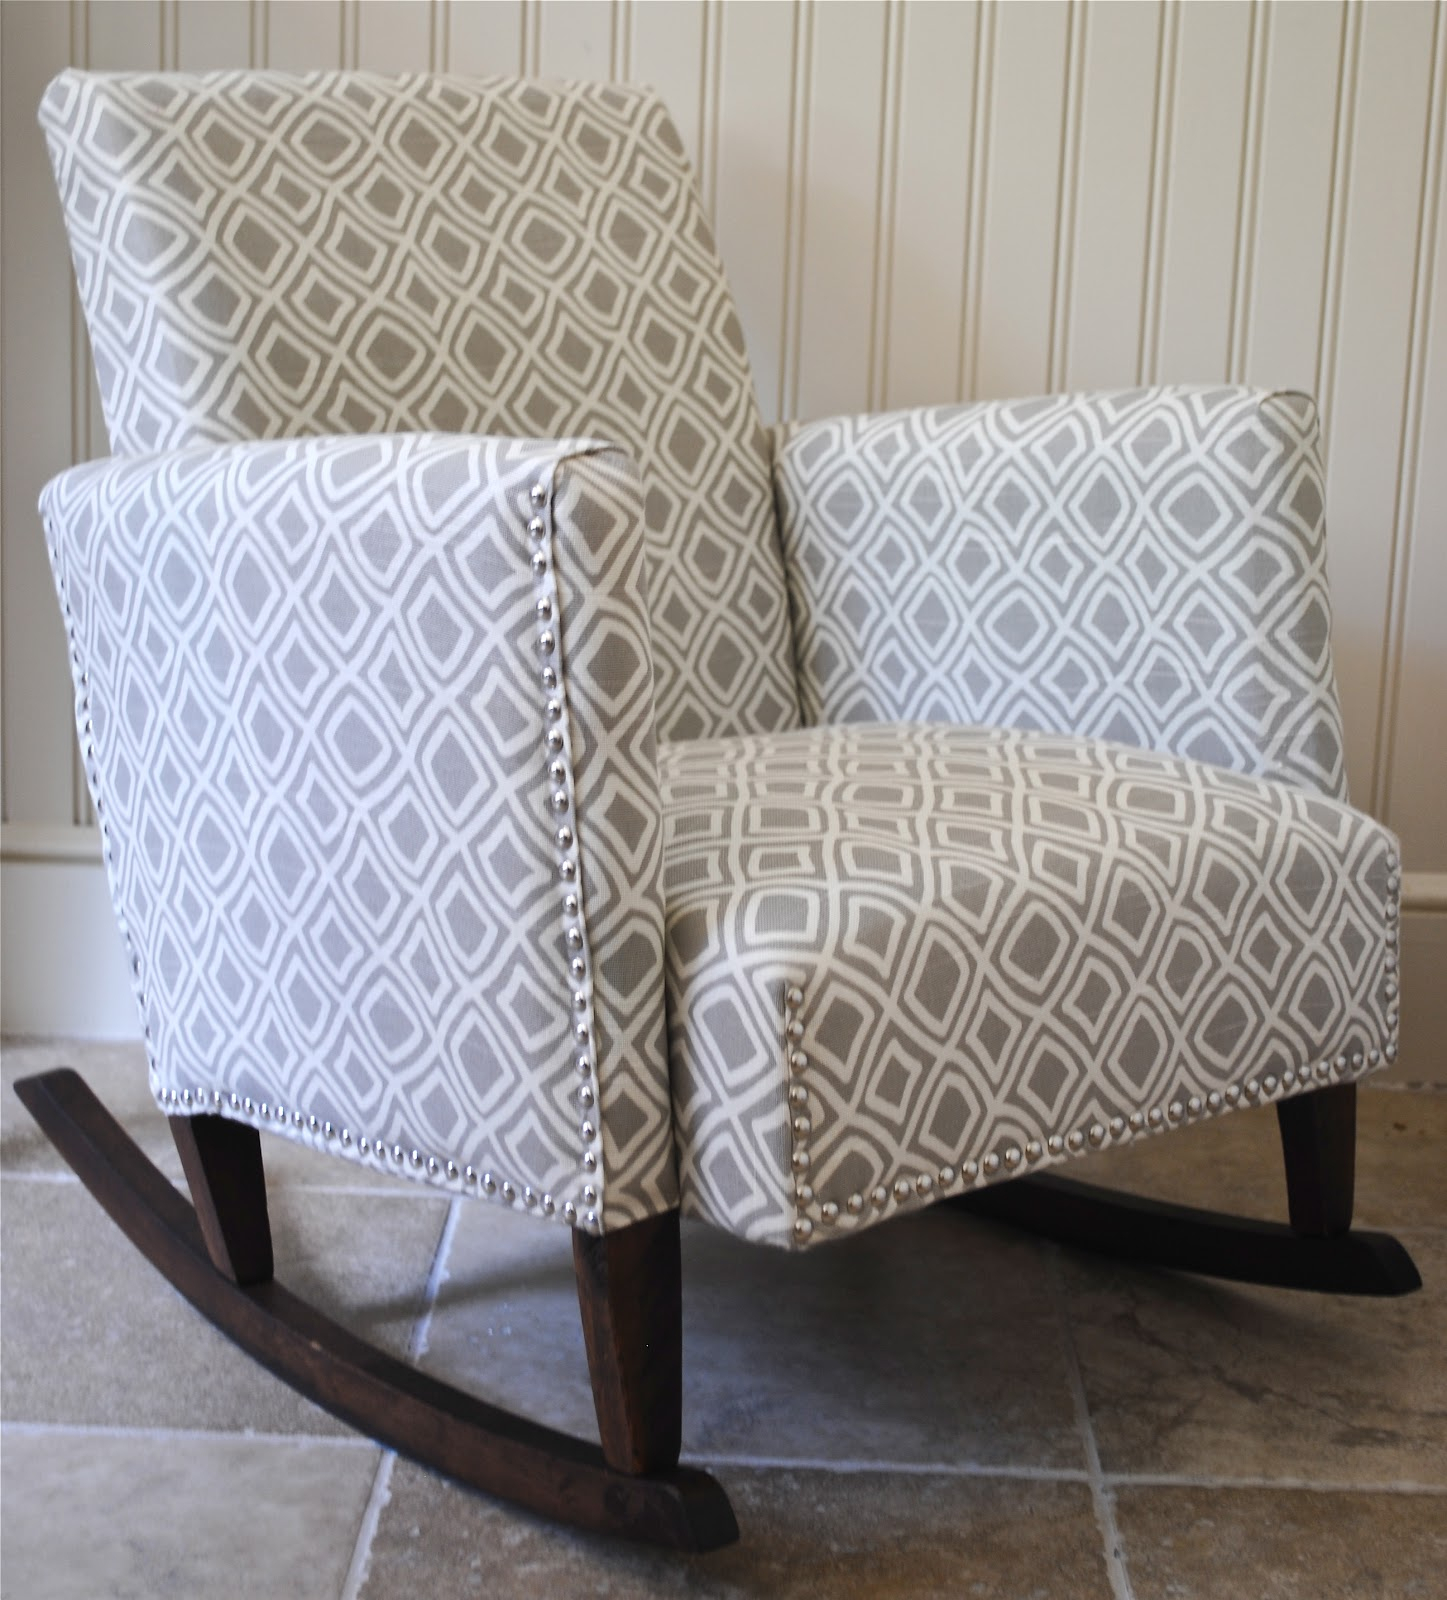 Inspiration about Diy}Ish Upholstered Child's Rocking Chair – The Chronicles With Regard To Padded Rocking Chairs (#18 of 20)